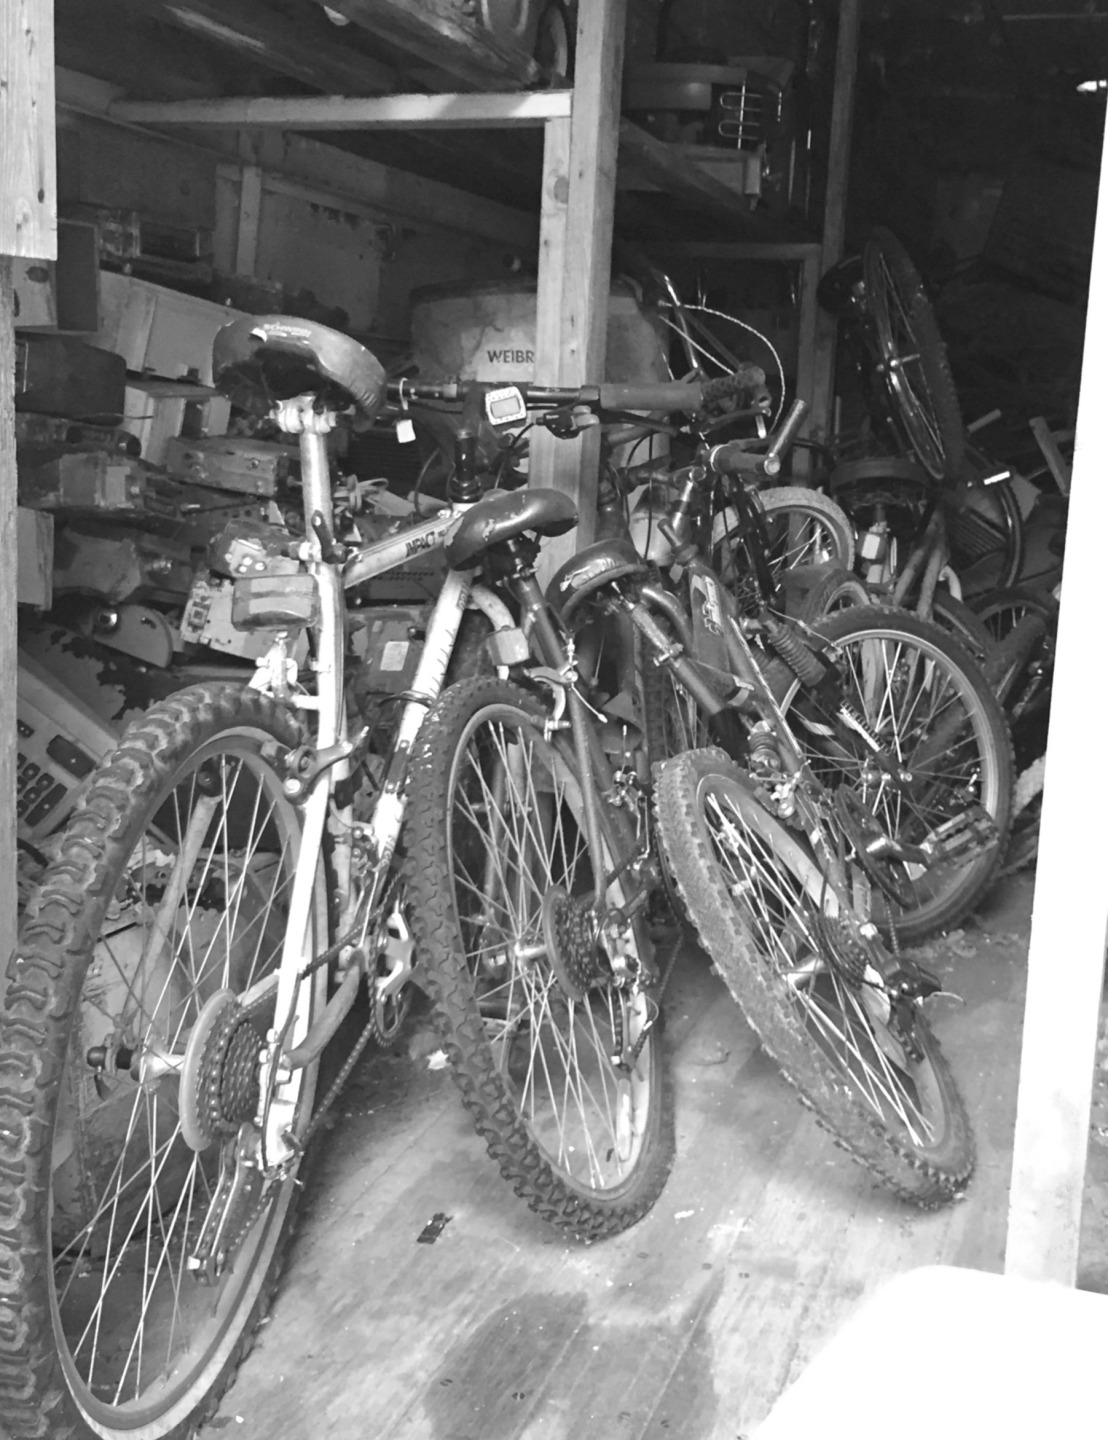 bw bikes in garage